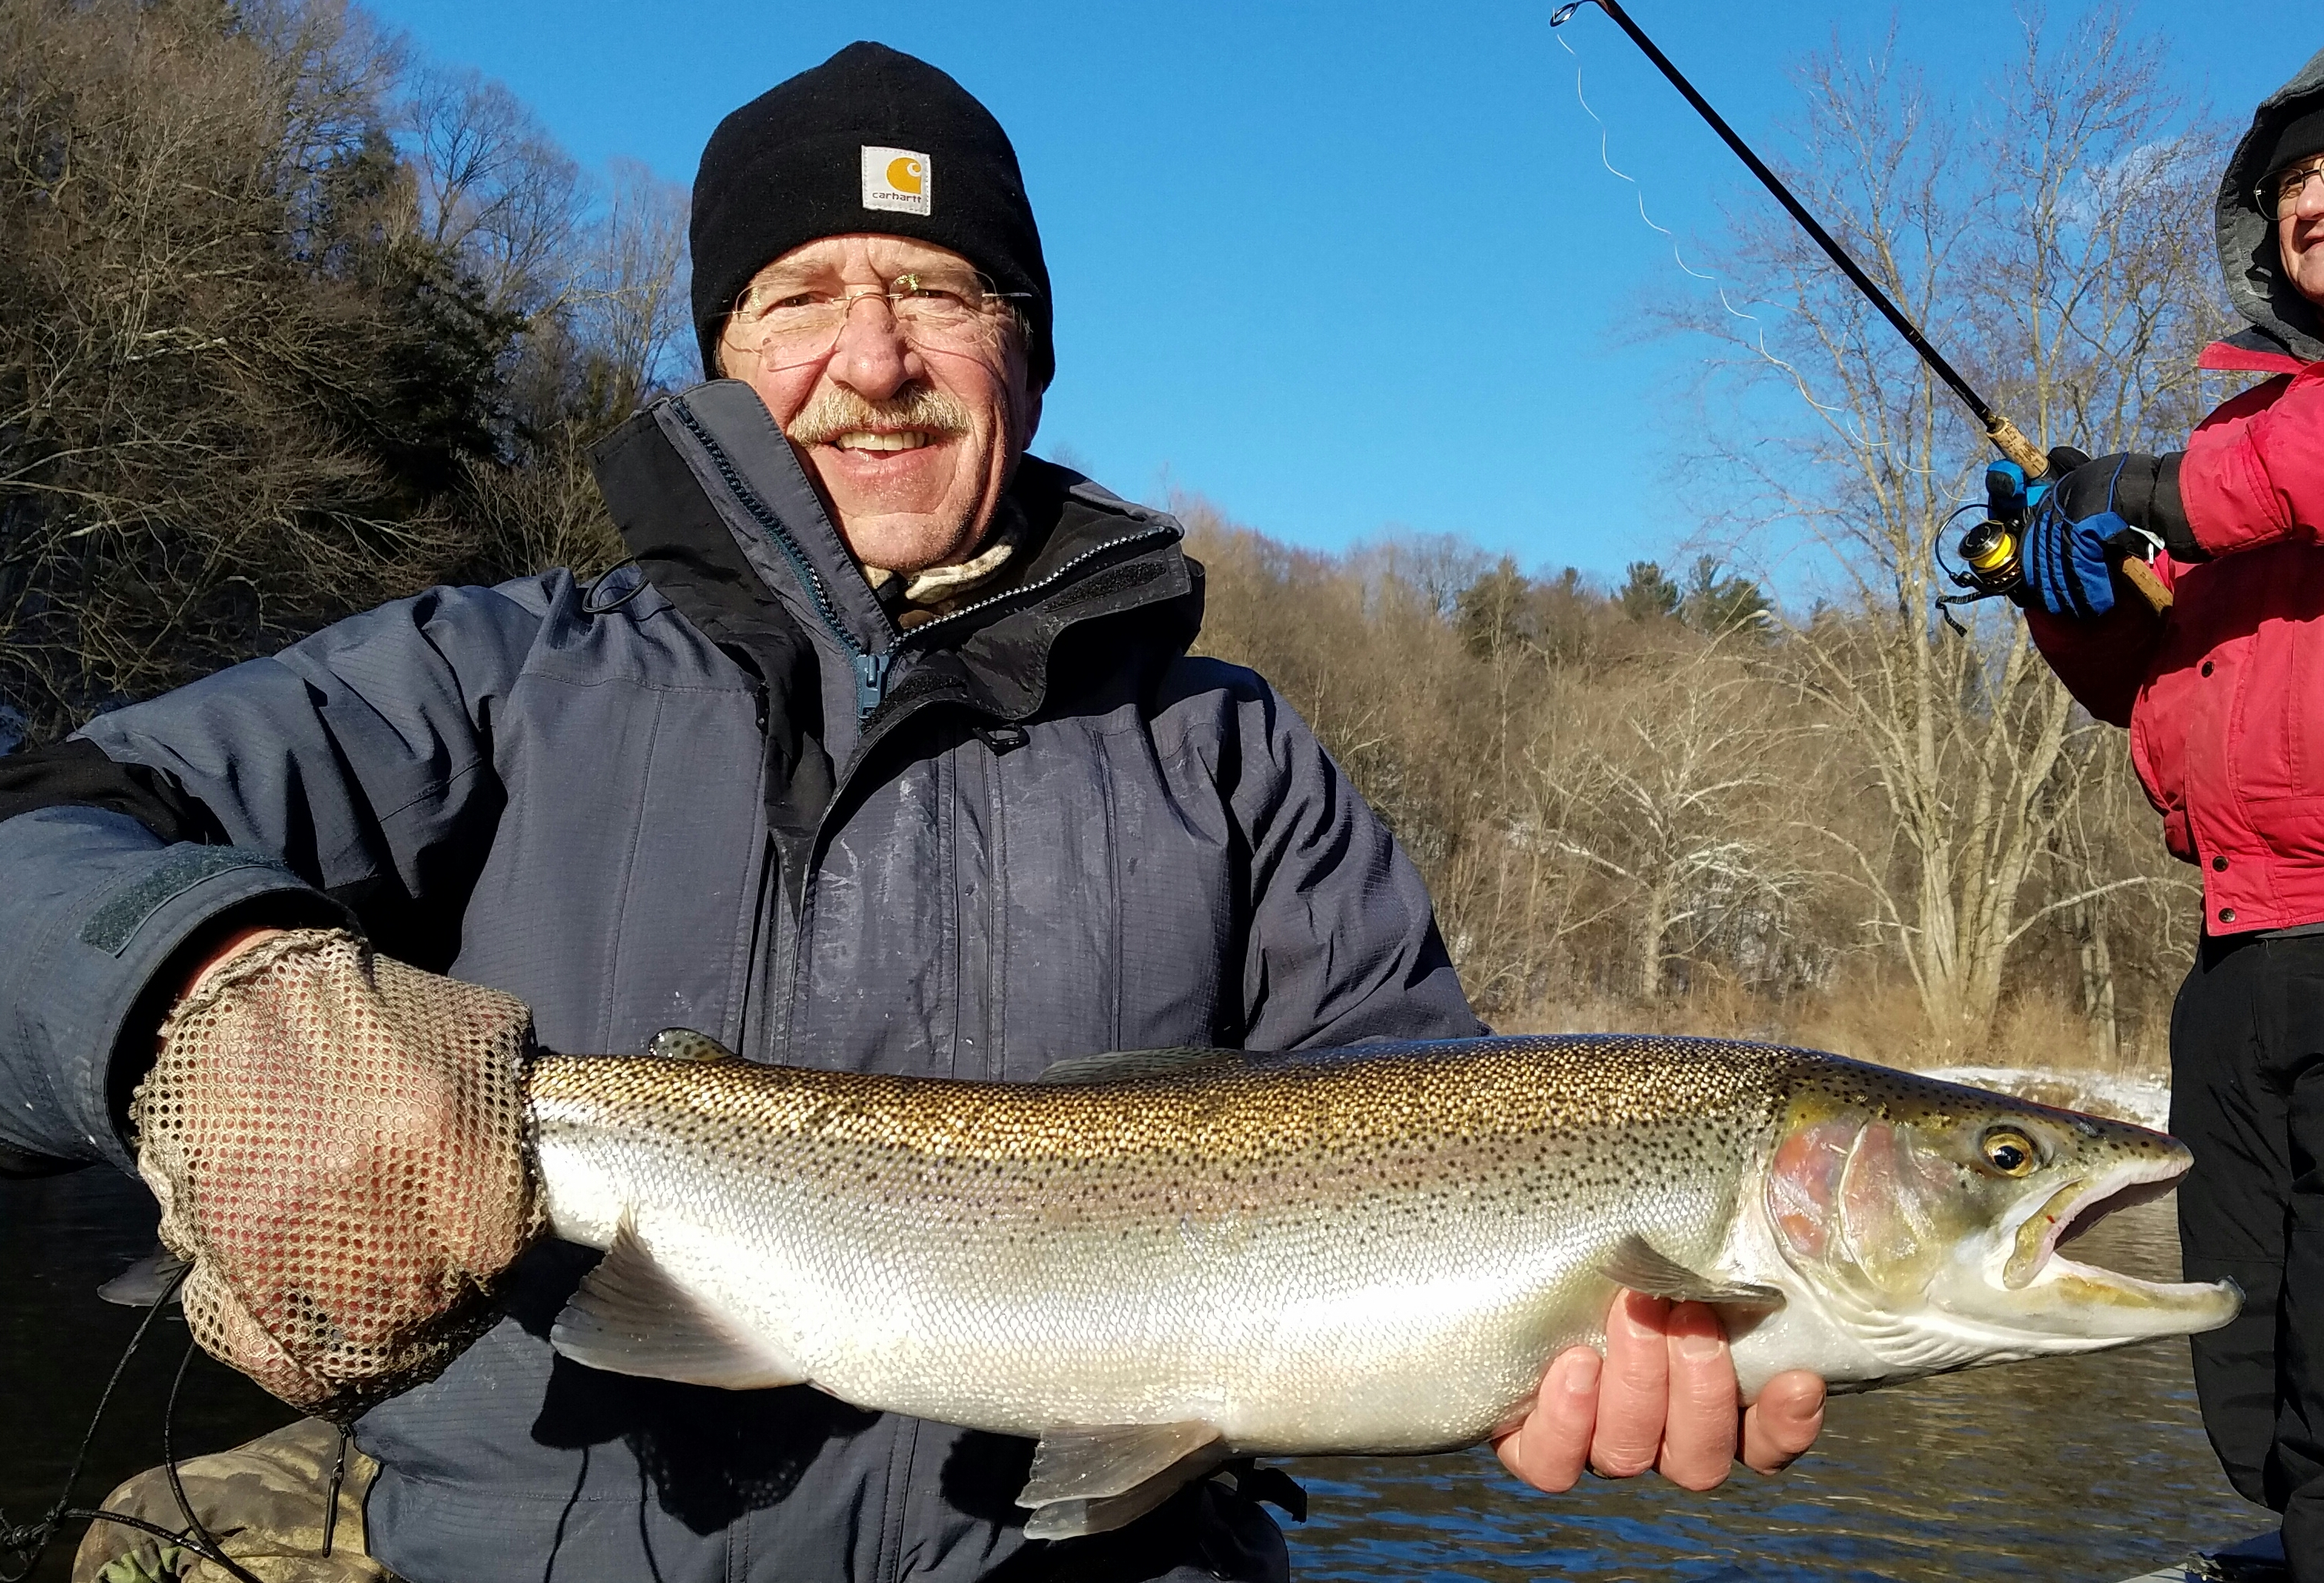 Grand river fishing report march 2017 coastal angler for Grand river fishing